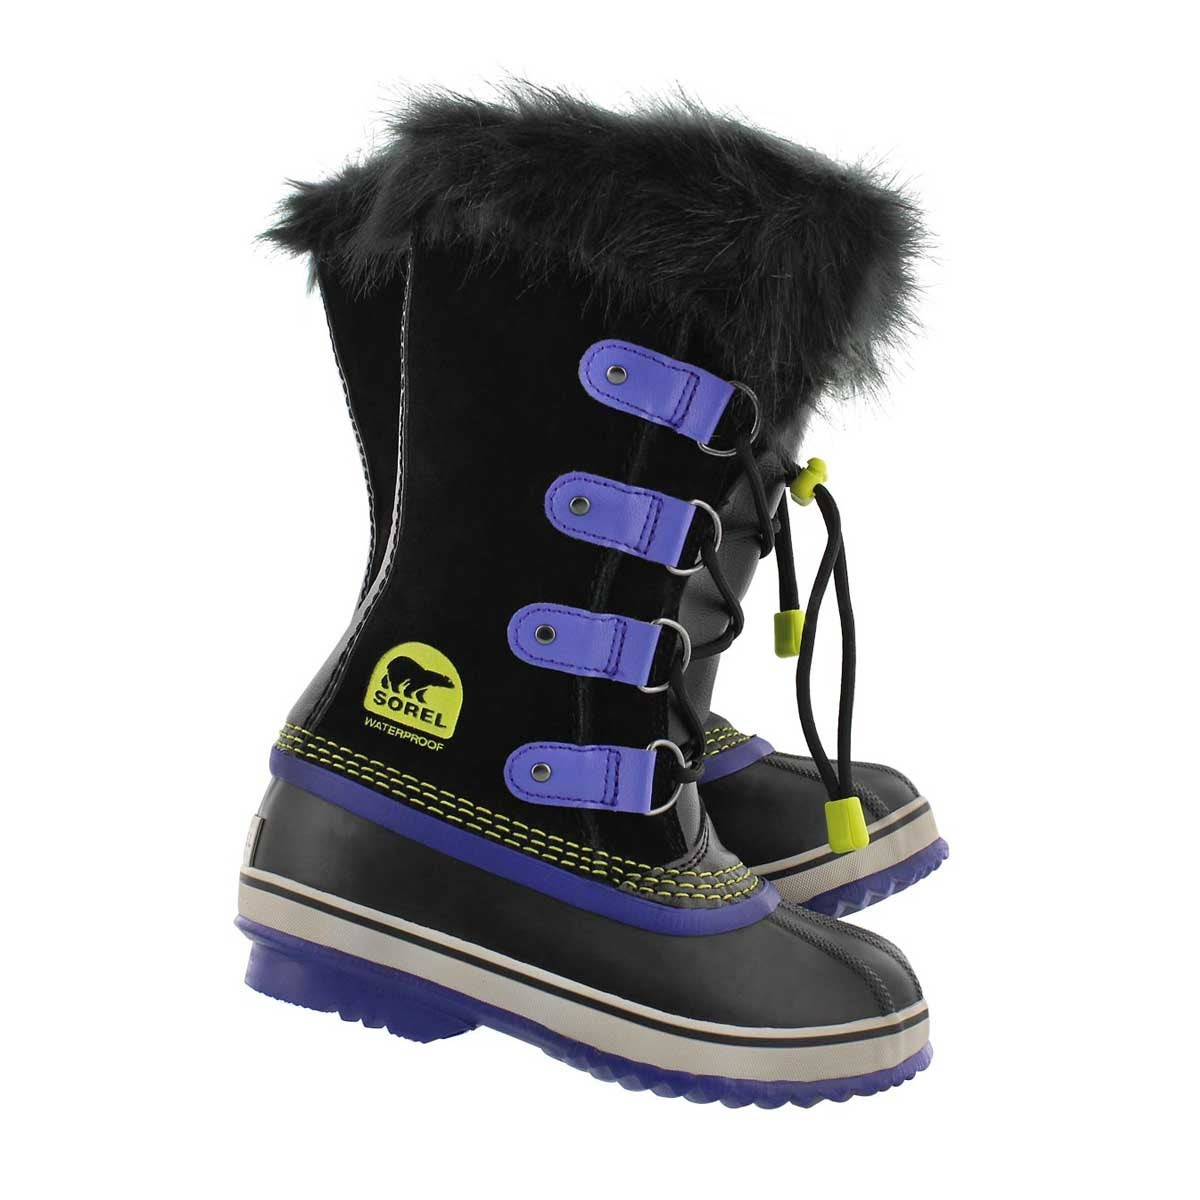 Grls Joan Of Arctic blk/purp winter boot